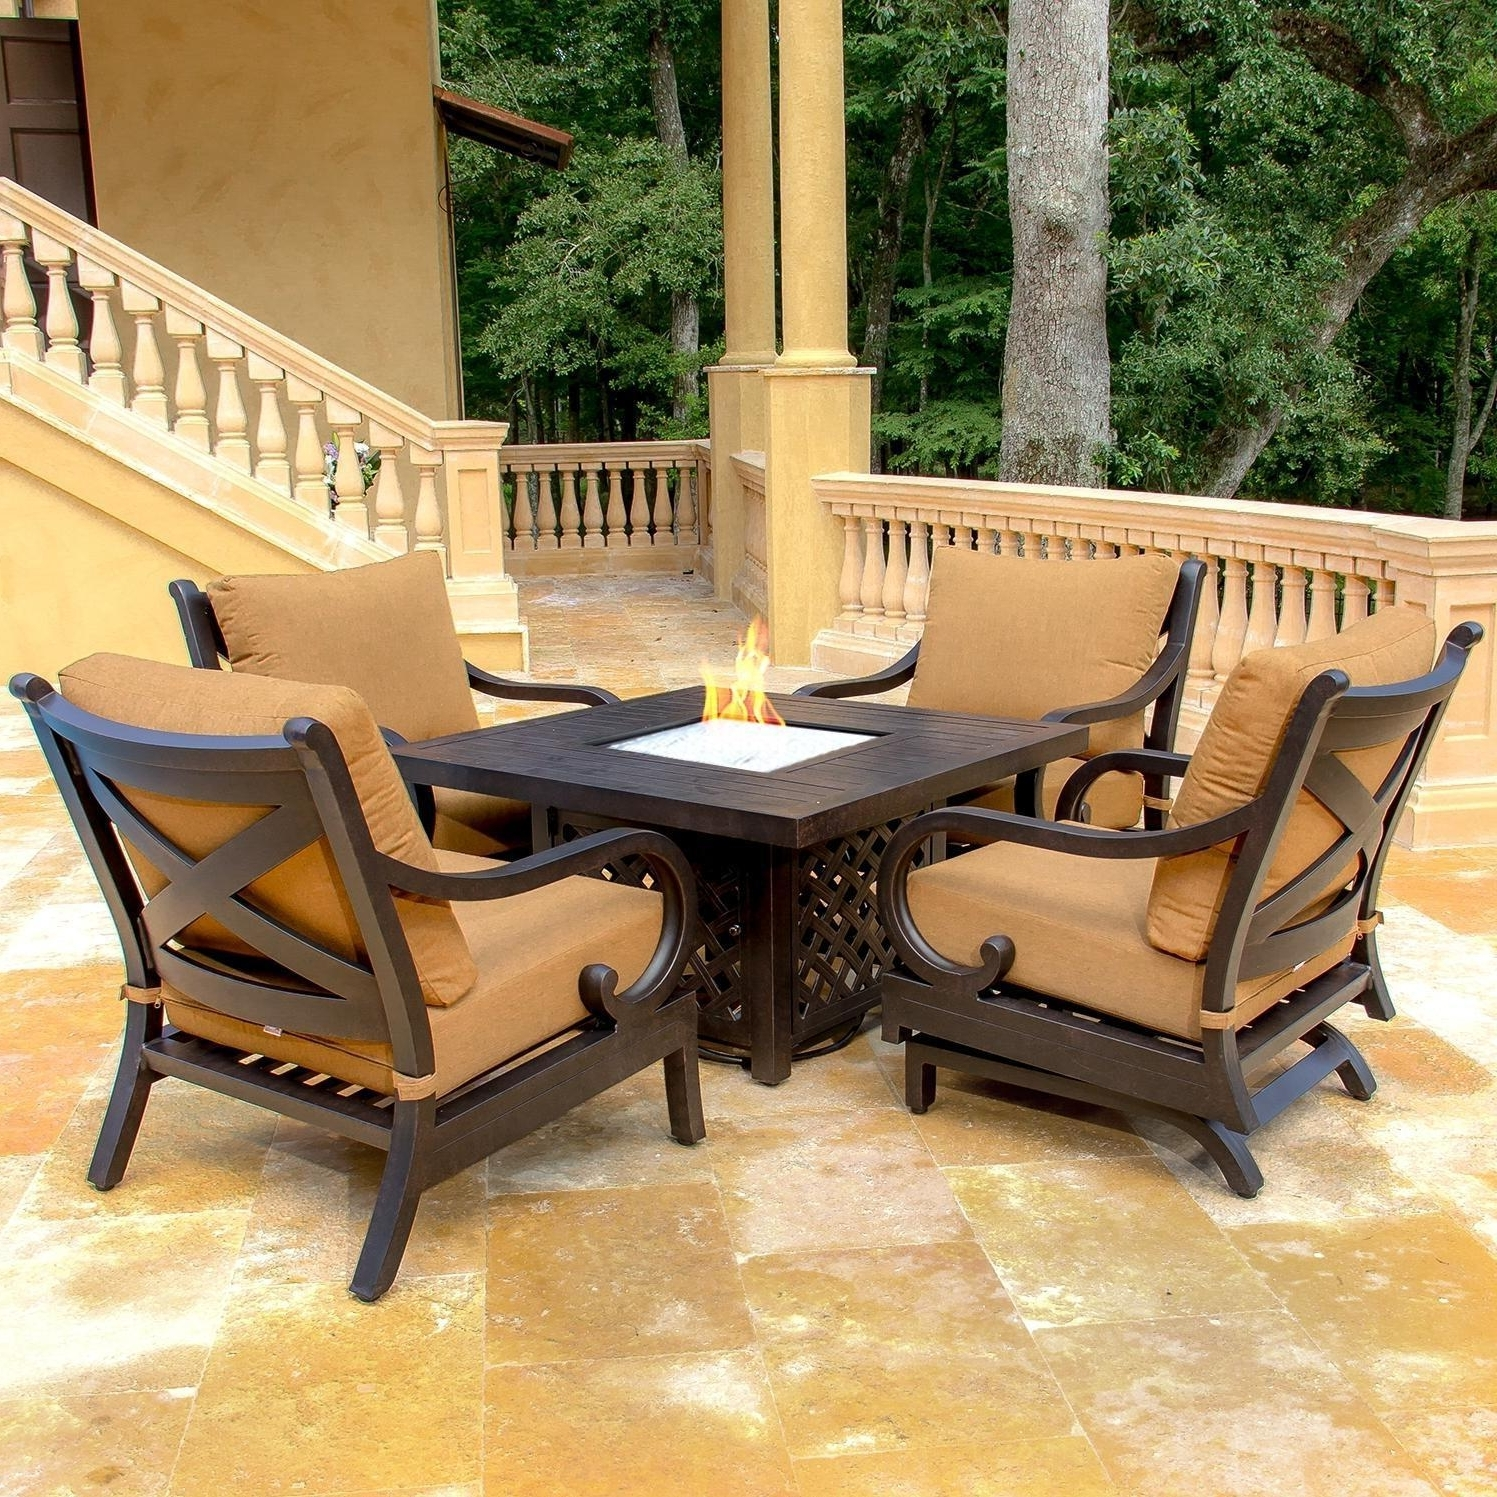 11 Patio Furniture Fire Pit (View 13 of 15)